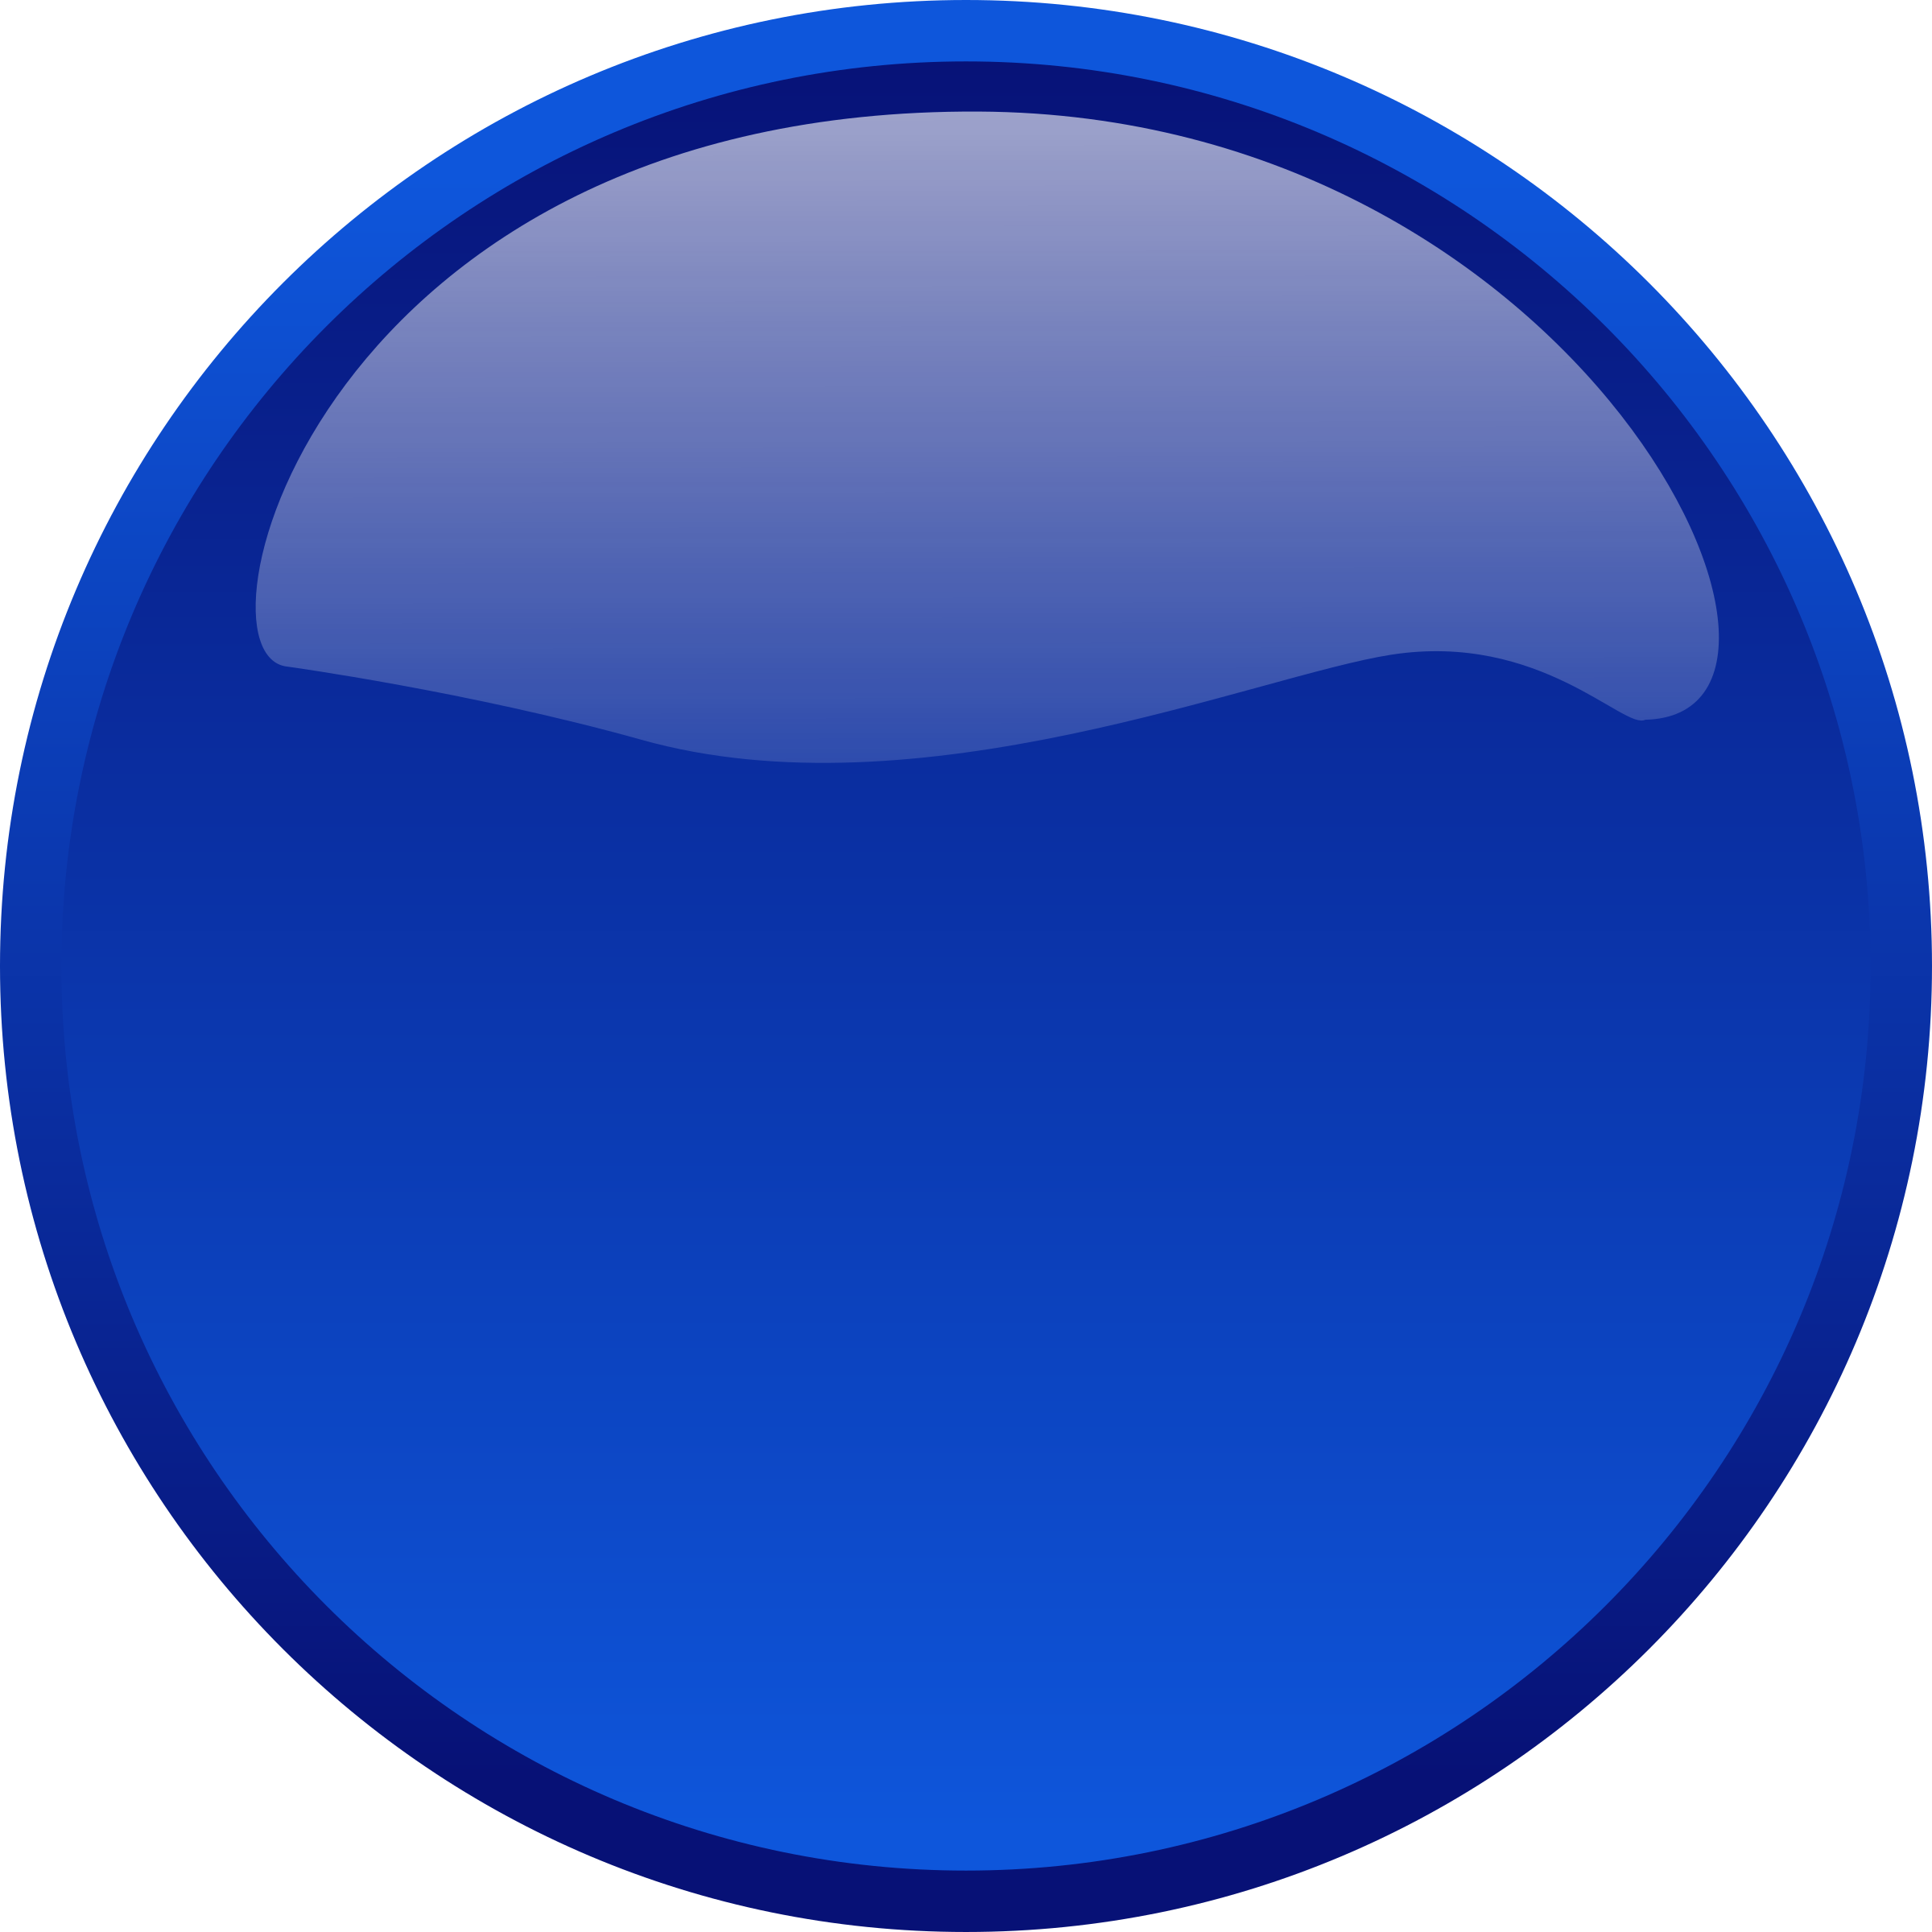 Button Blue by bpcomp